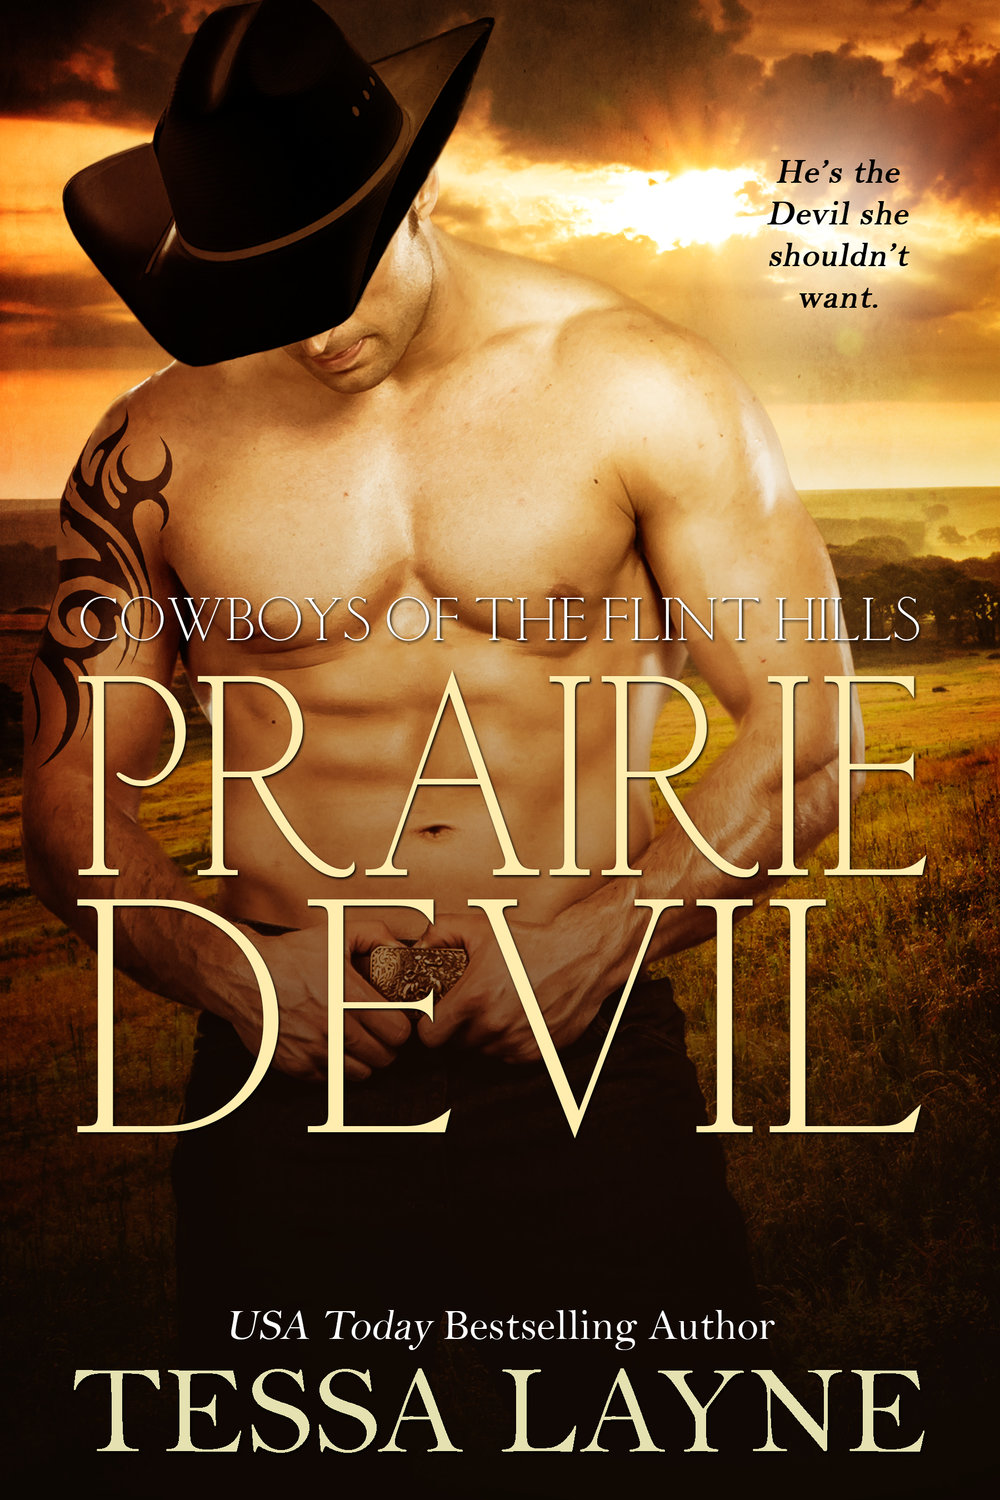 He's the Devil she shouldn't want - Thrown out of the house when he was seventeen, bad boy Colton Kincaid left Prairie in the rear-view mirror and never looked back. Determined to make something of himself, he scrapped his way to superstardom at the top of the rodeo circuit, leaving behind a string of broken hearts. He's perfectly happy with his no-strings-attached life until a chance encounter with hometown good girl Lydia Grace leaves him questioning everything and wanting a shot at redemptionDownload HereKINDLE IBOOKS NOOK GOOGLE KOBO